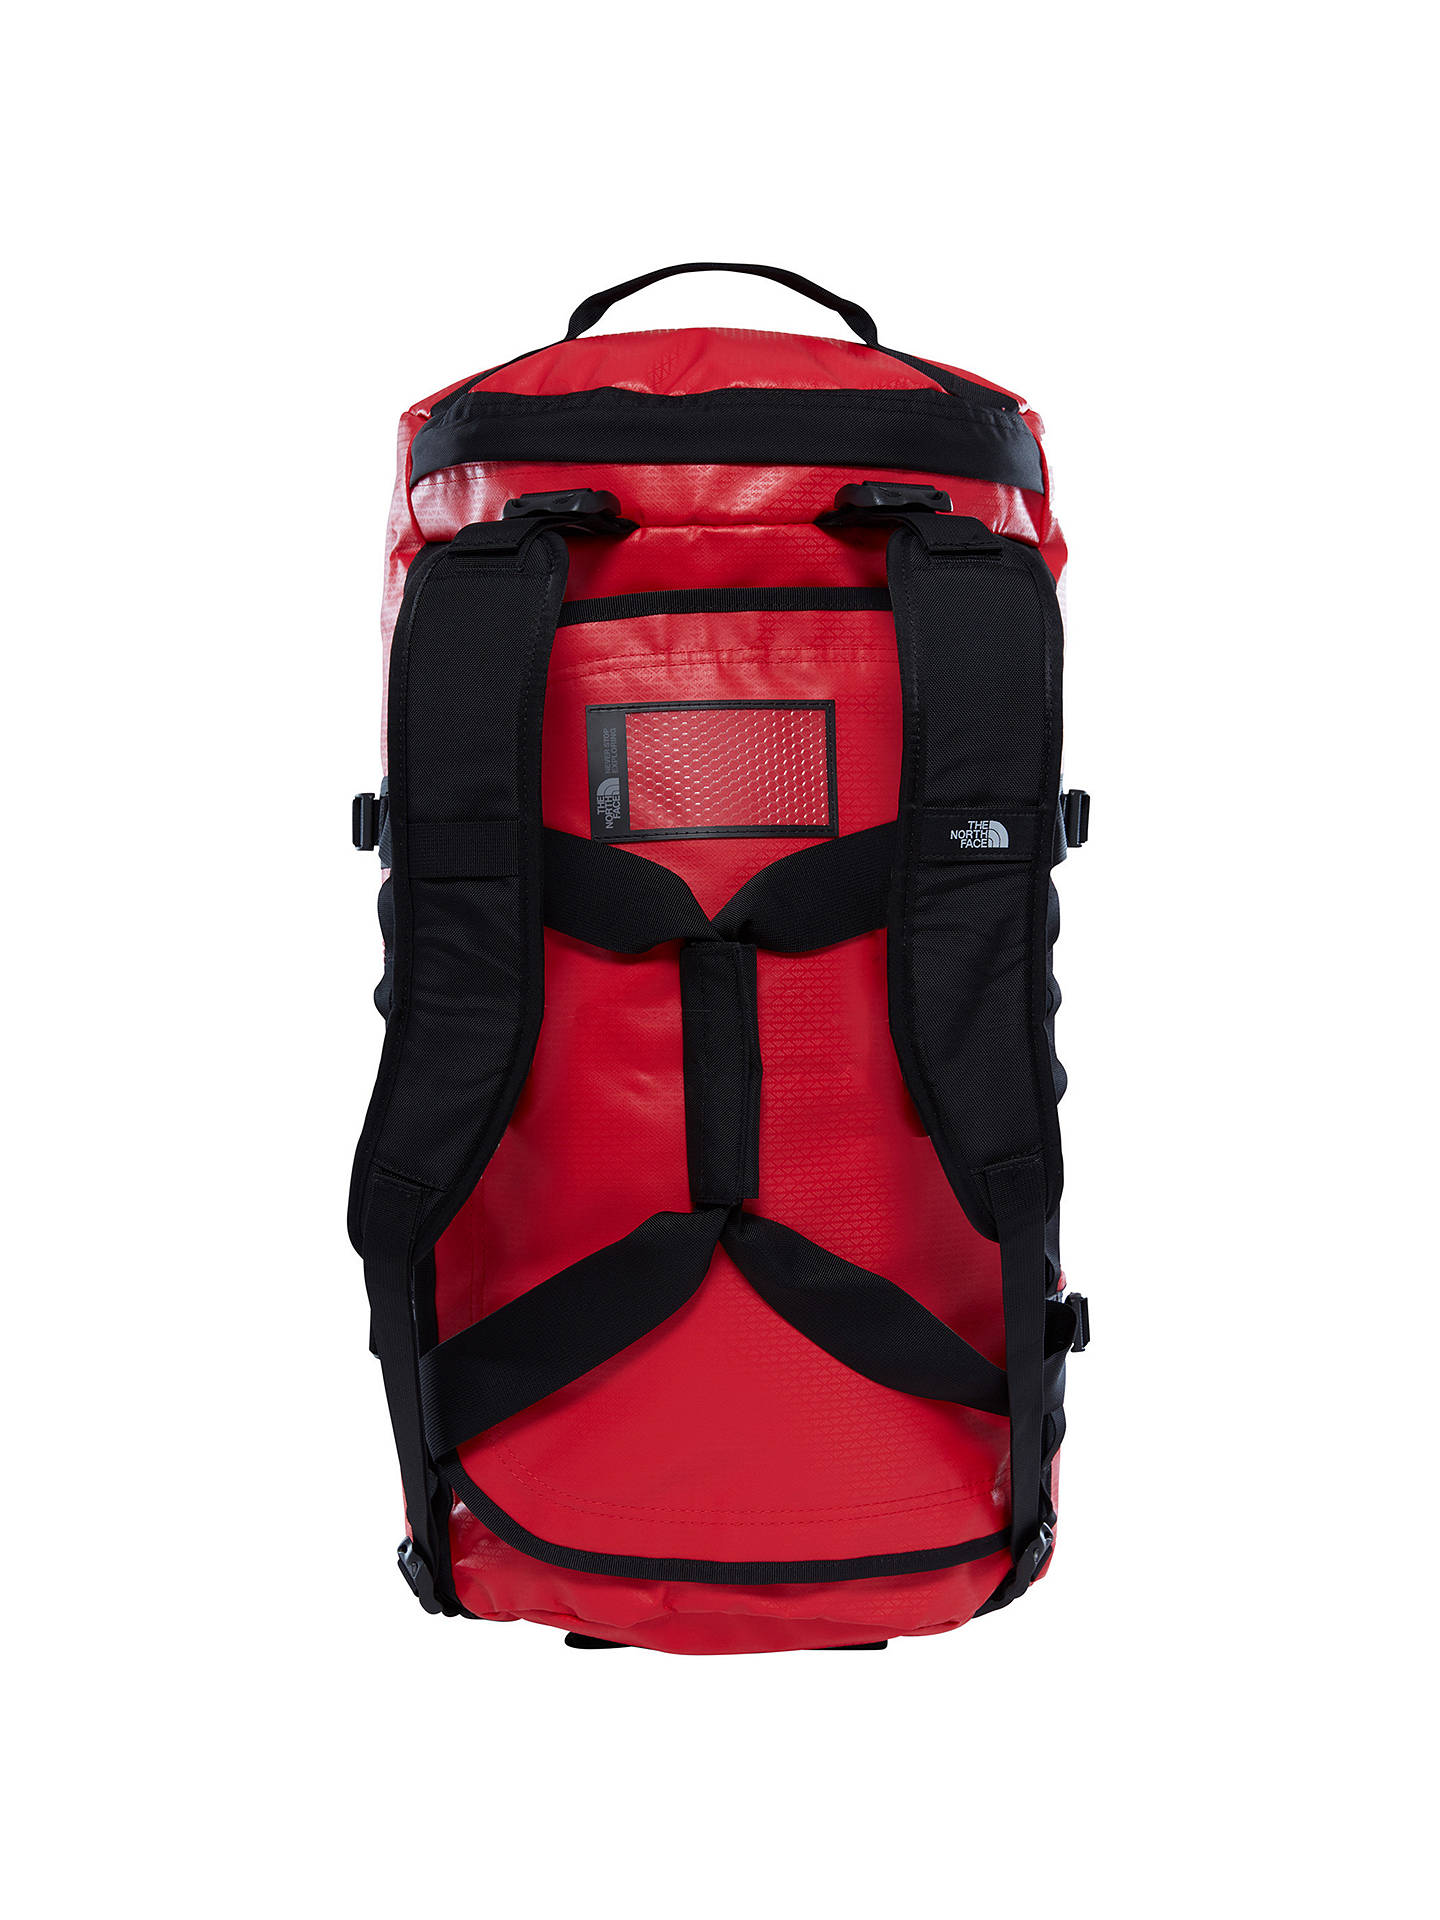 BuyThe North Face Base Camp Duffle Bag, Medium, Red Online at johnlewis.com